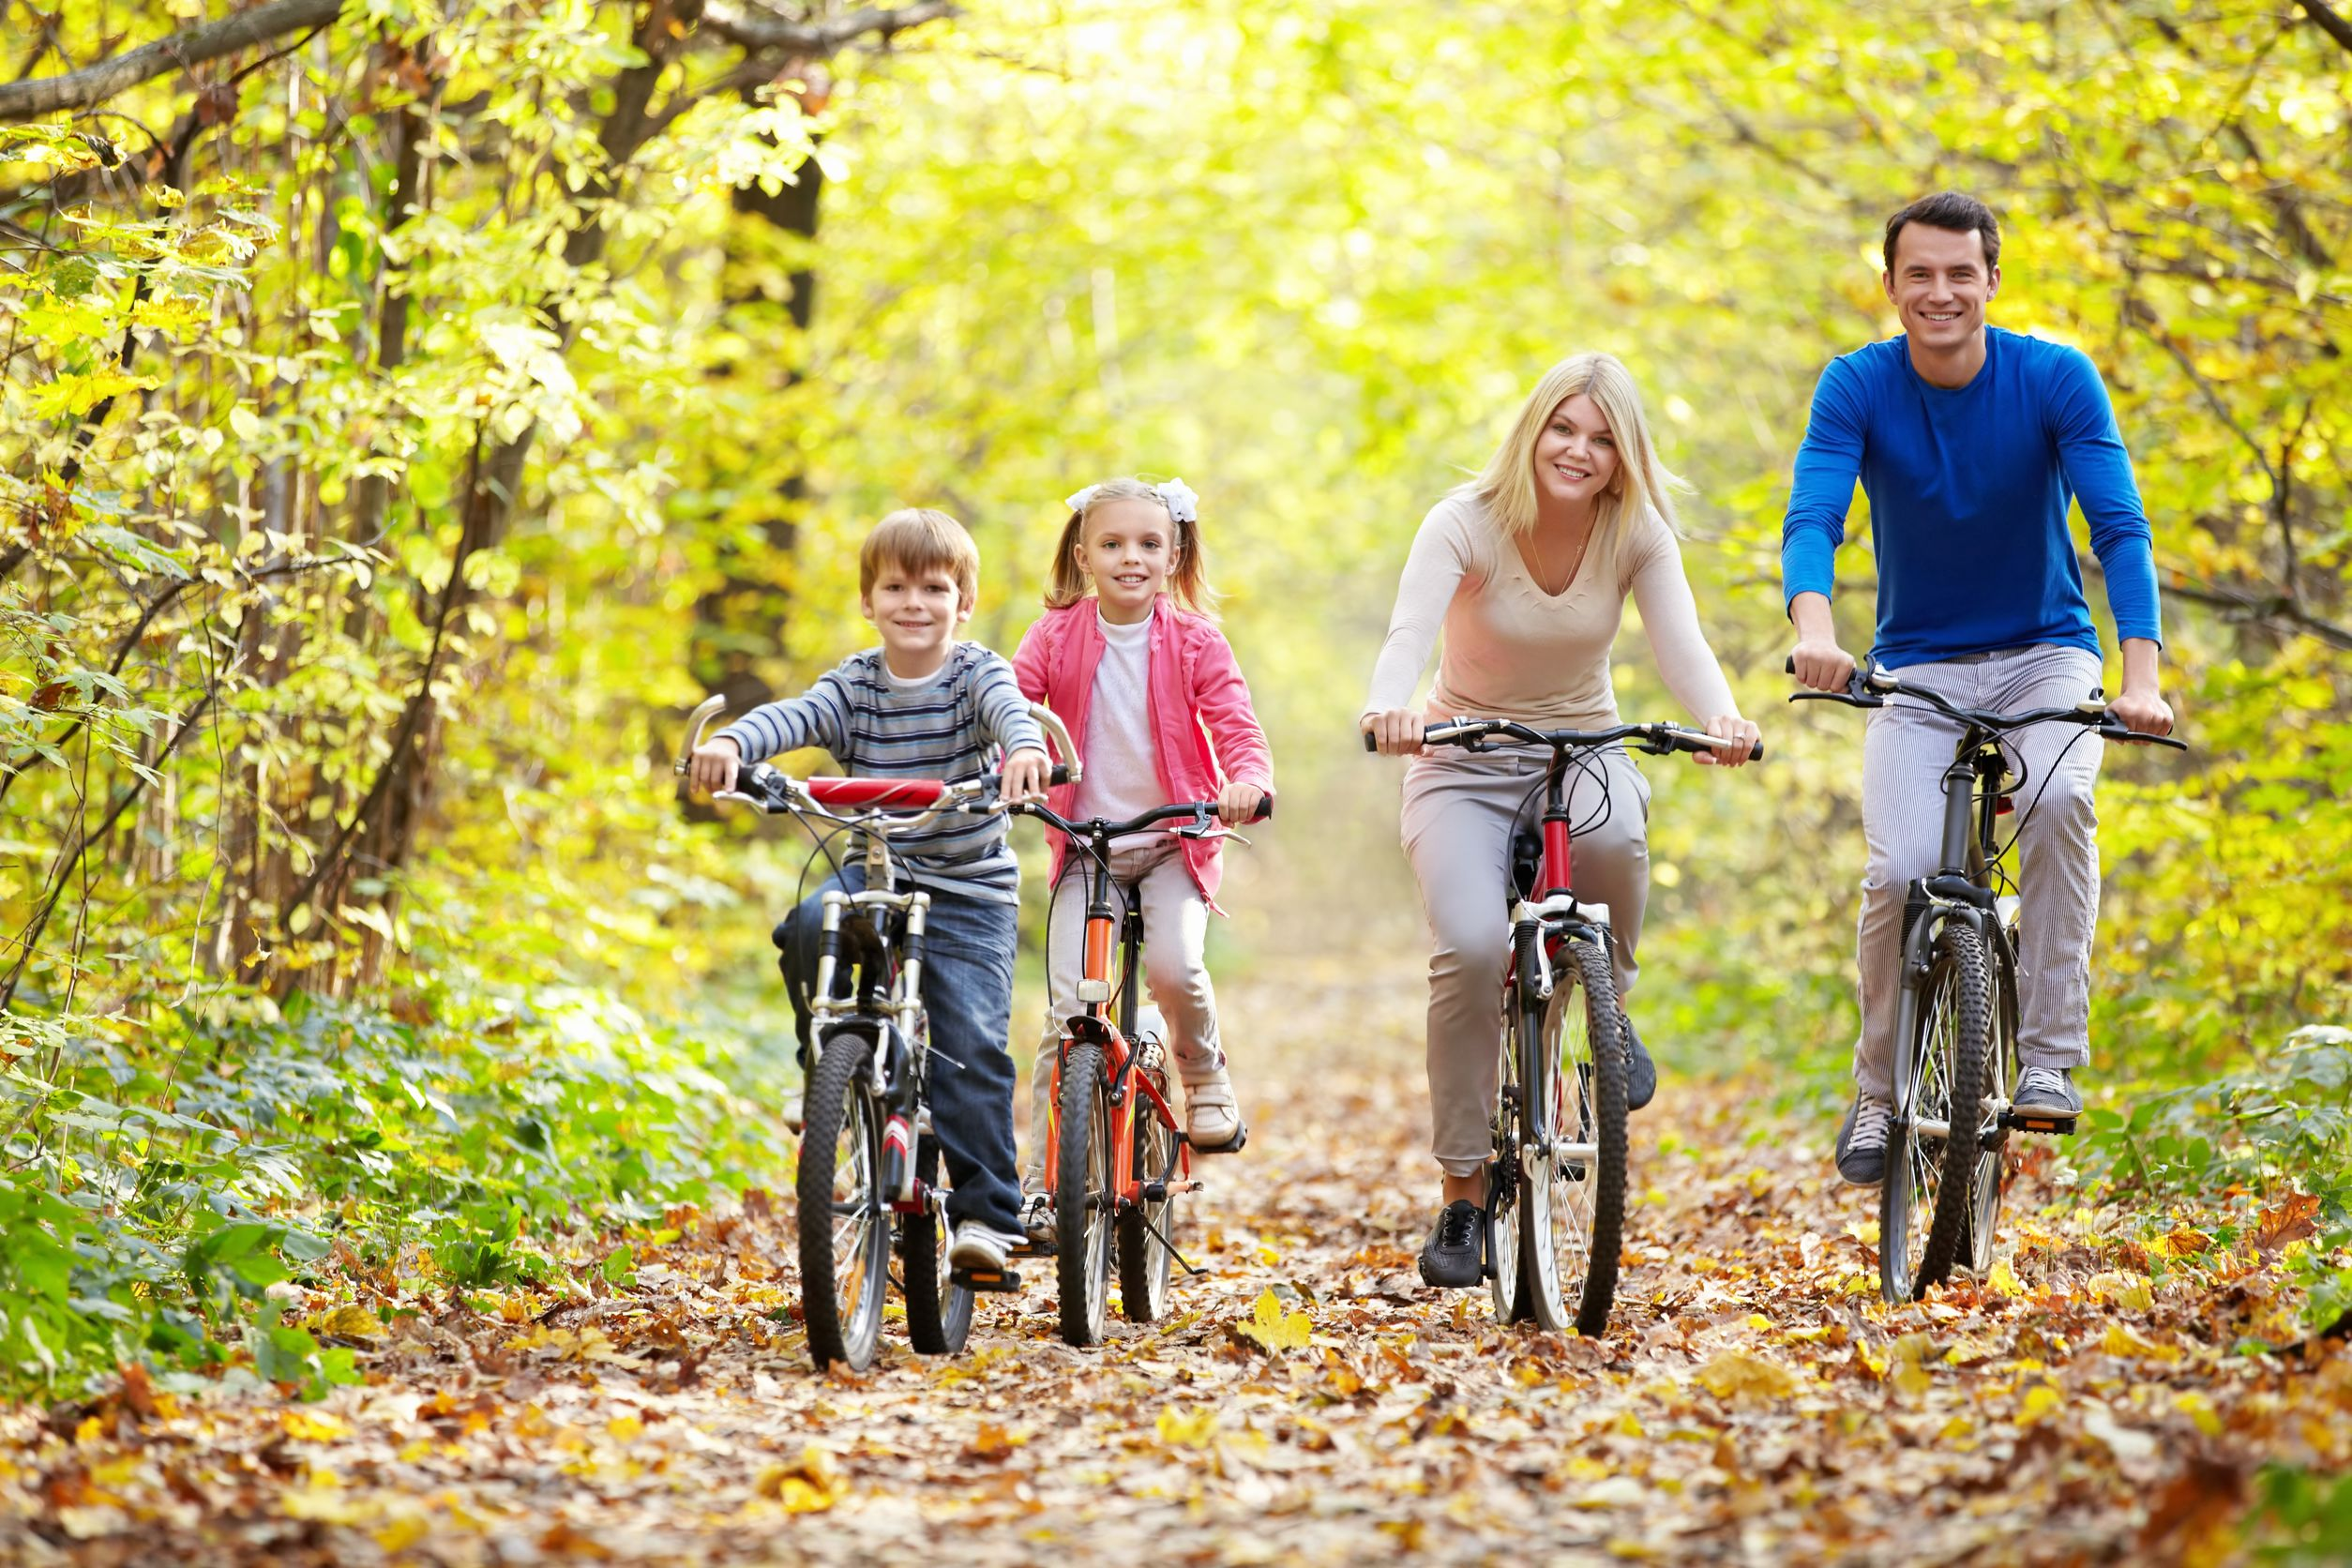 11989474 – family on bikes in the park in autumn